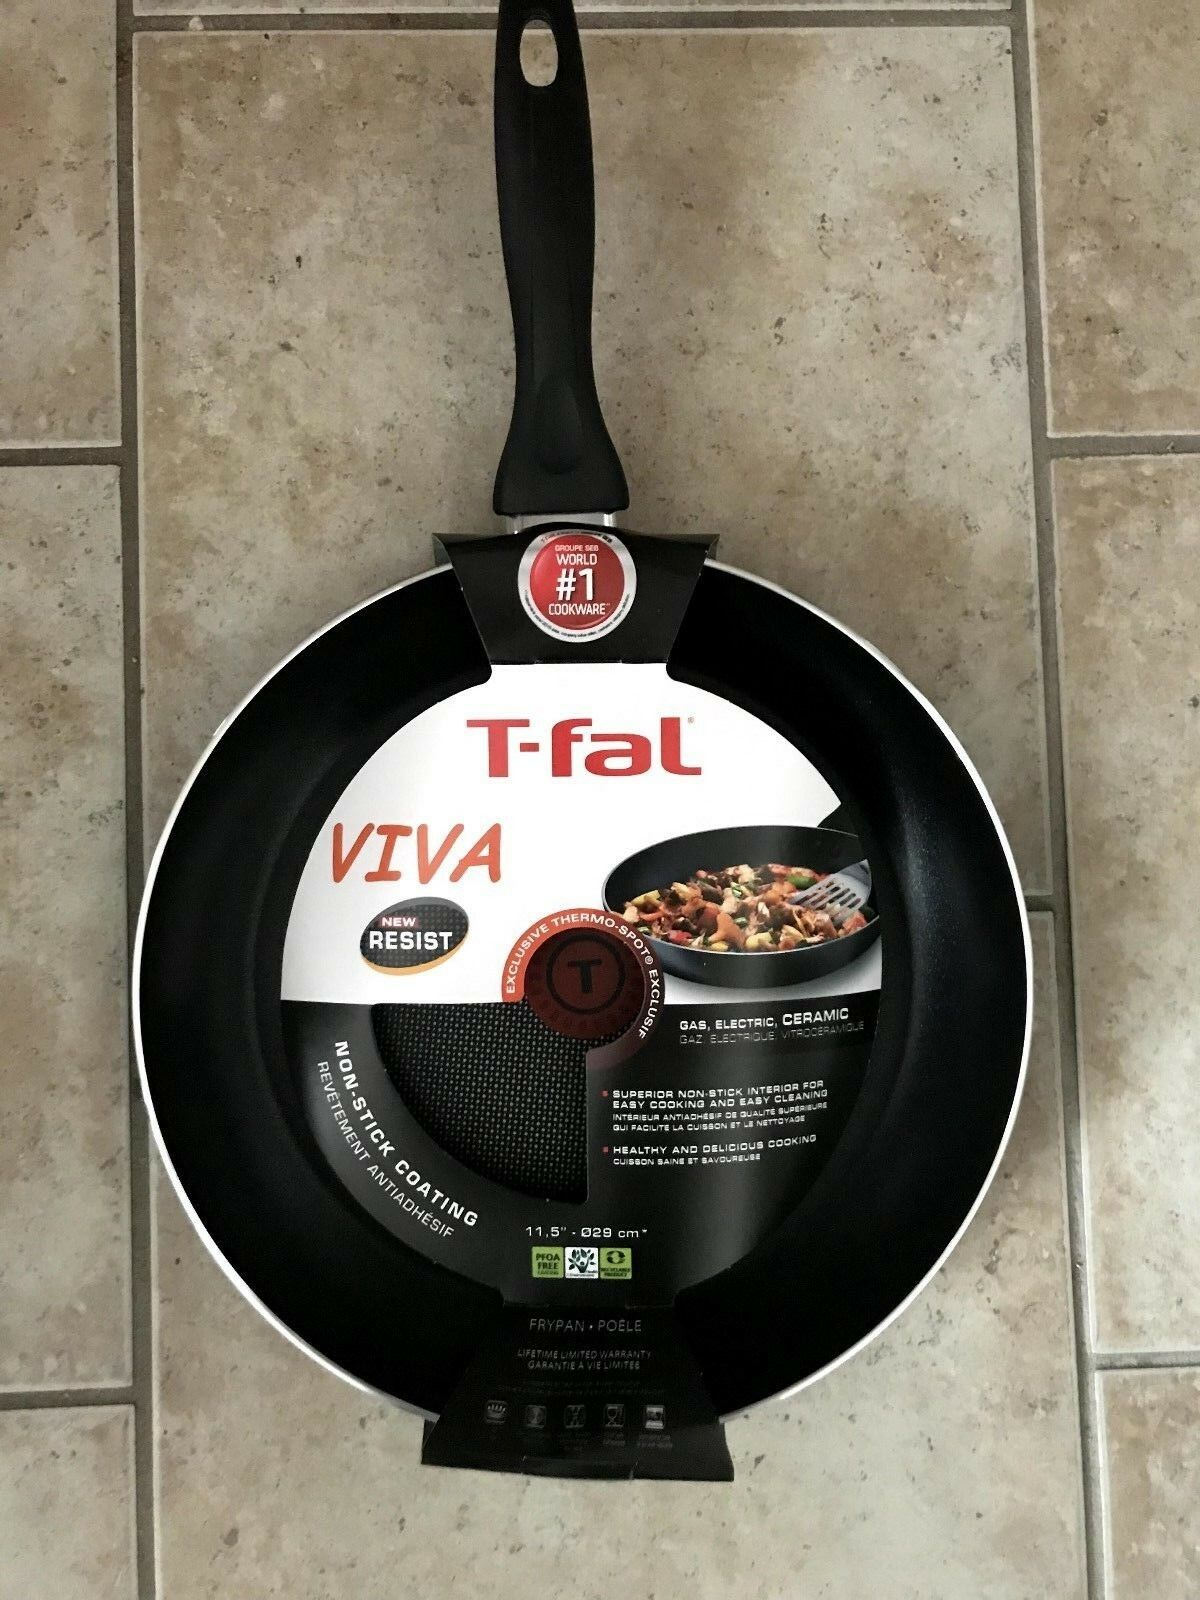 (2) BRAND NEW T-FAL VIVA 29cm AND 30cm FRYING PANS